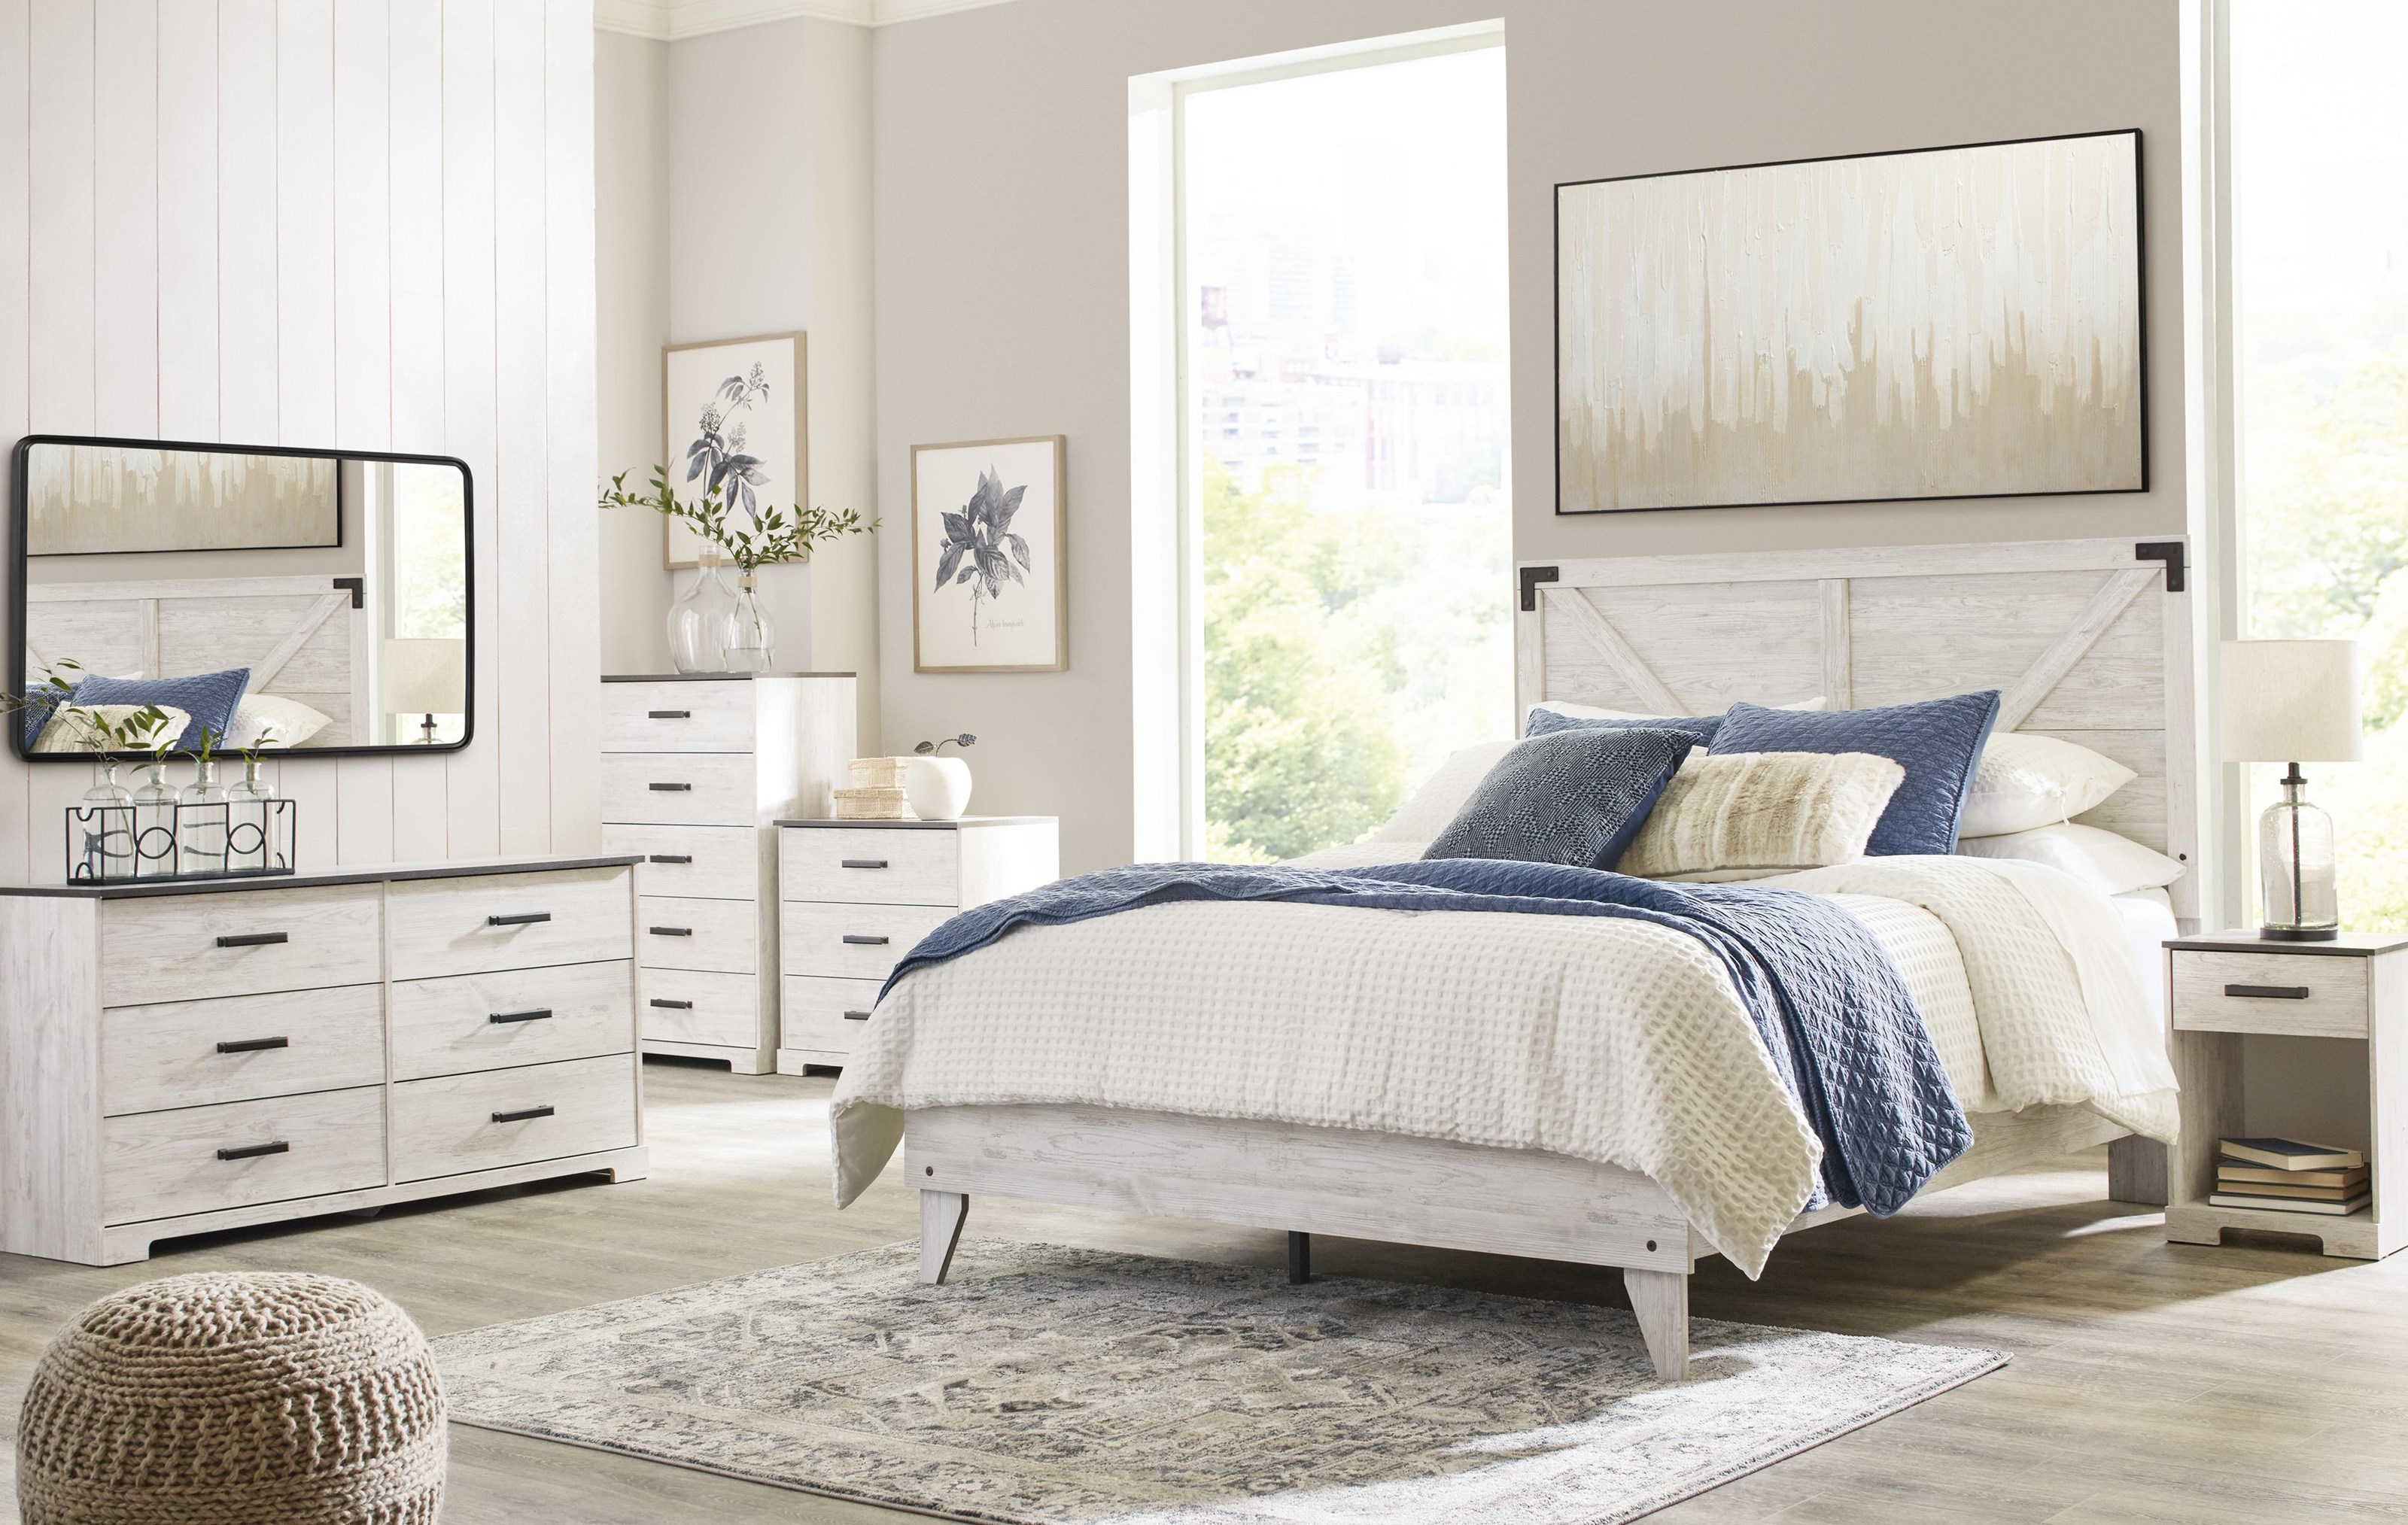 Shawburn 3 Piece Queen Bedroom Set by Signature Design by Ashley at Sam Levitz Outlet